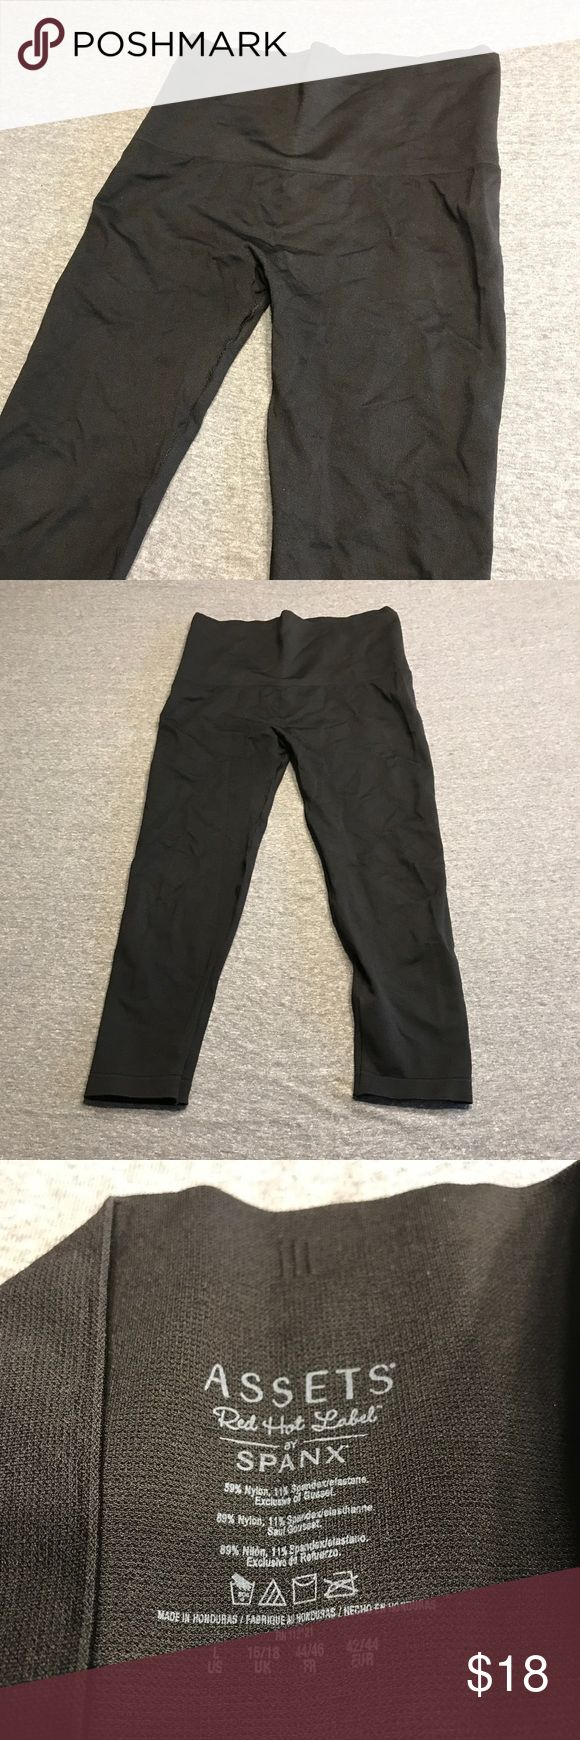 Assets Red Hot Label by Spanx Leggings Capris Assets Red Hot Label by Spanx leggings. Solid black. Shaping waistband flattens tummy for a flawless look. Extremely comfortable and not see through! Assets By Spanx Pants Leggings